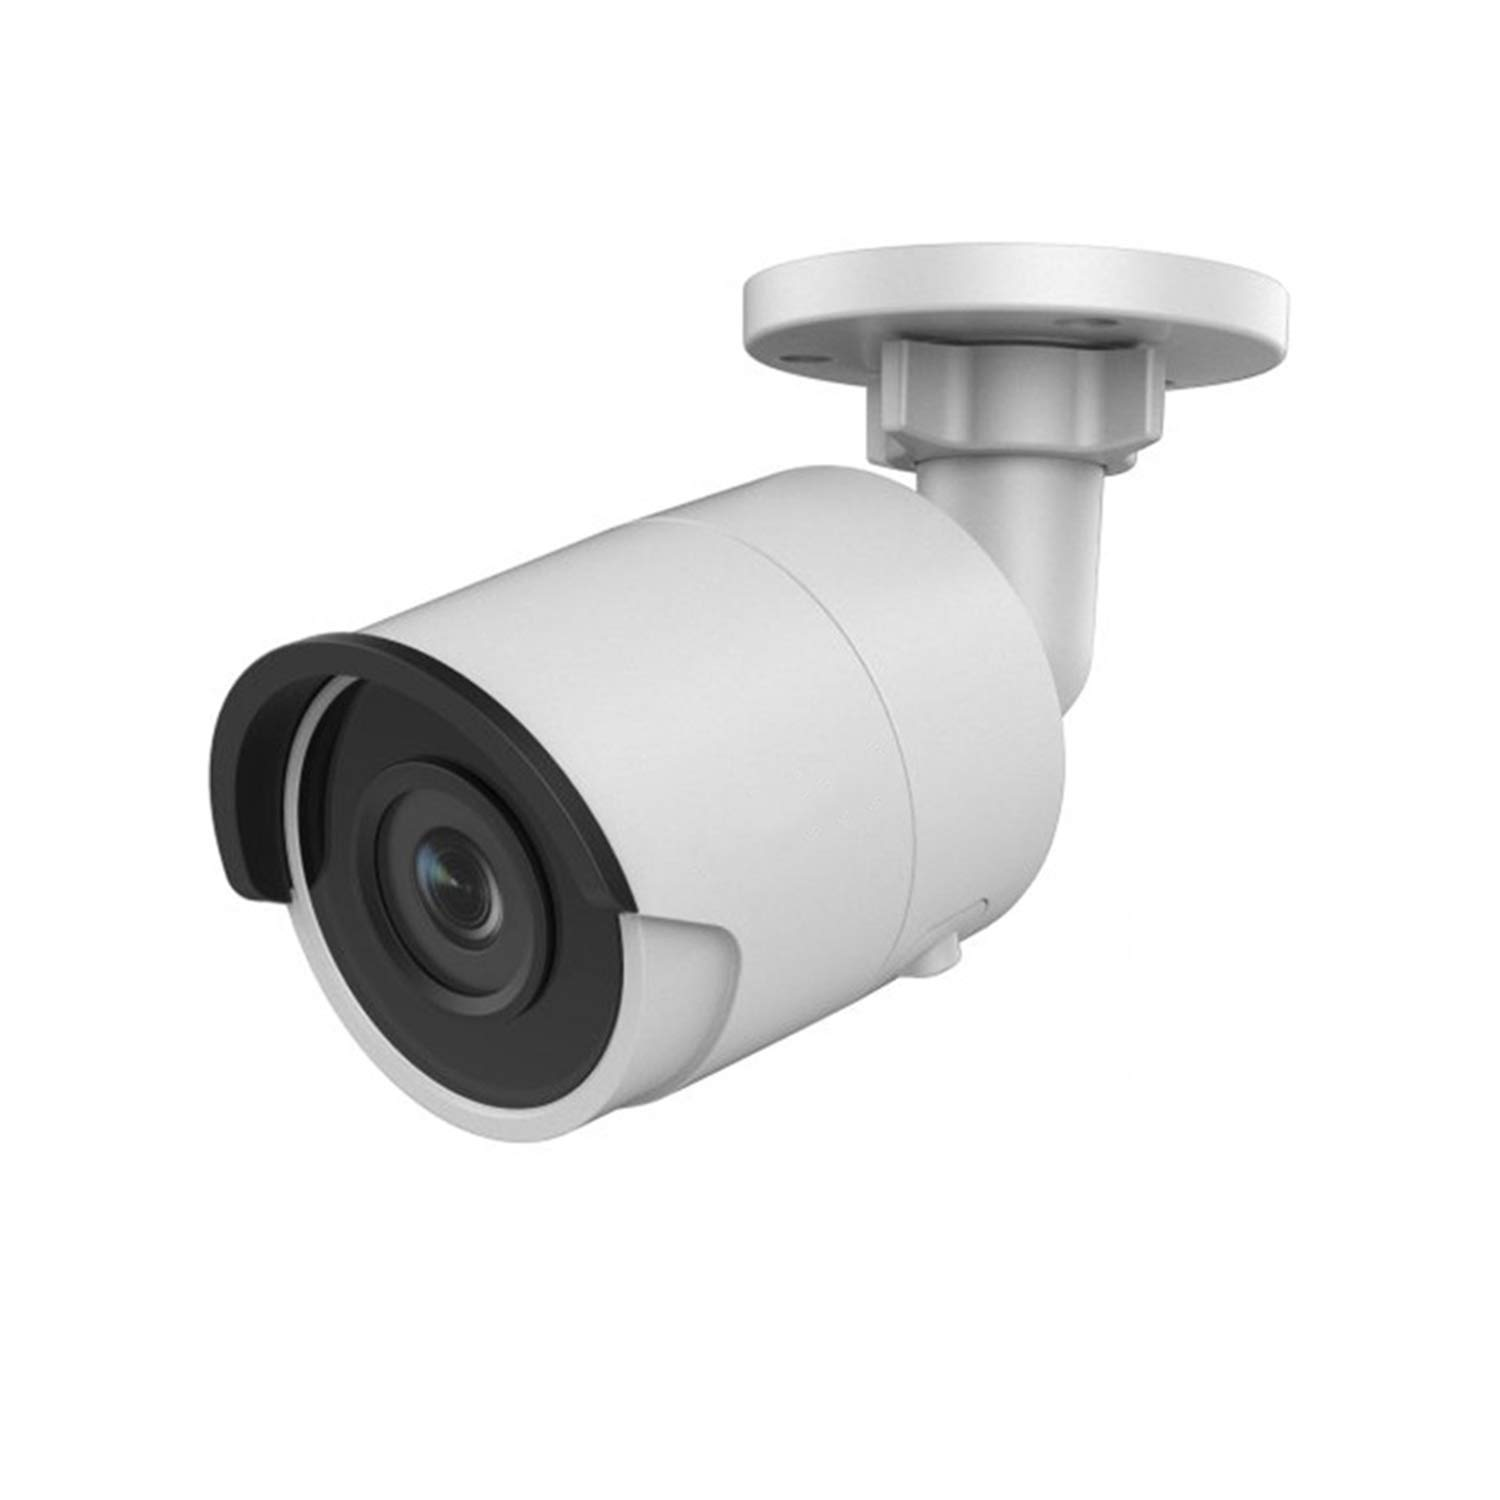 (Hik Compatible) OEM 4MP PoE IP Outdoor Bullet H265+ 2K HD Camera with EXIR 98ft Night Vision 4mm Lens, English Version Smart H.265+ ONVIF IP67 Waterproof Camera with SD Card Slot, DS-2CD2043G0-I